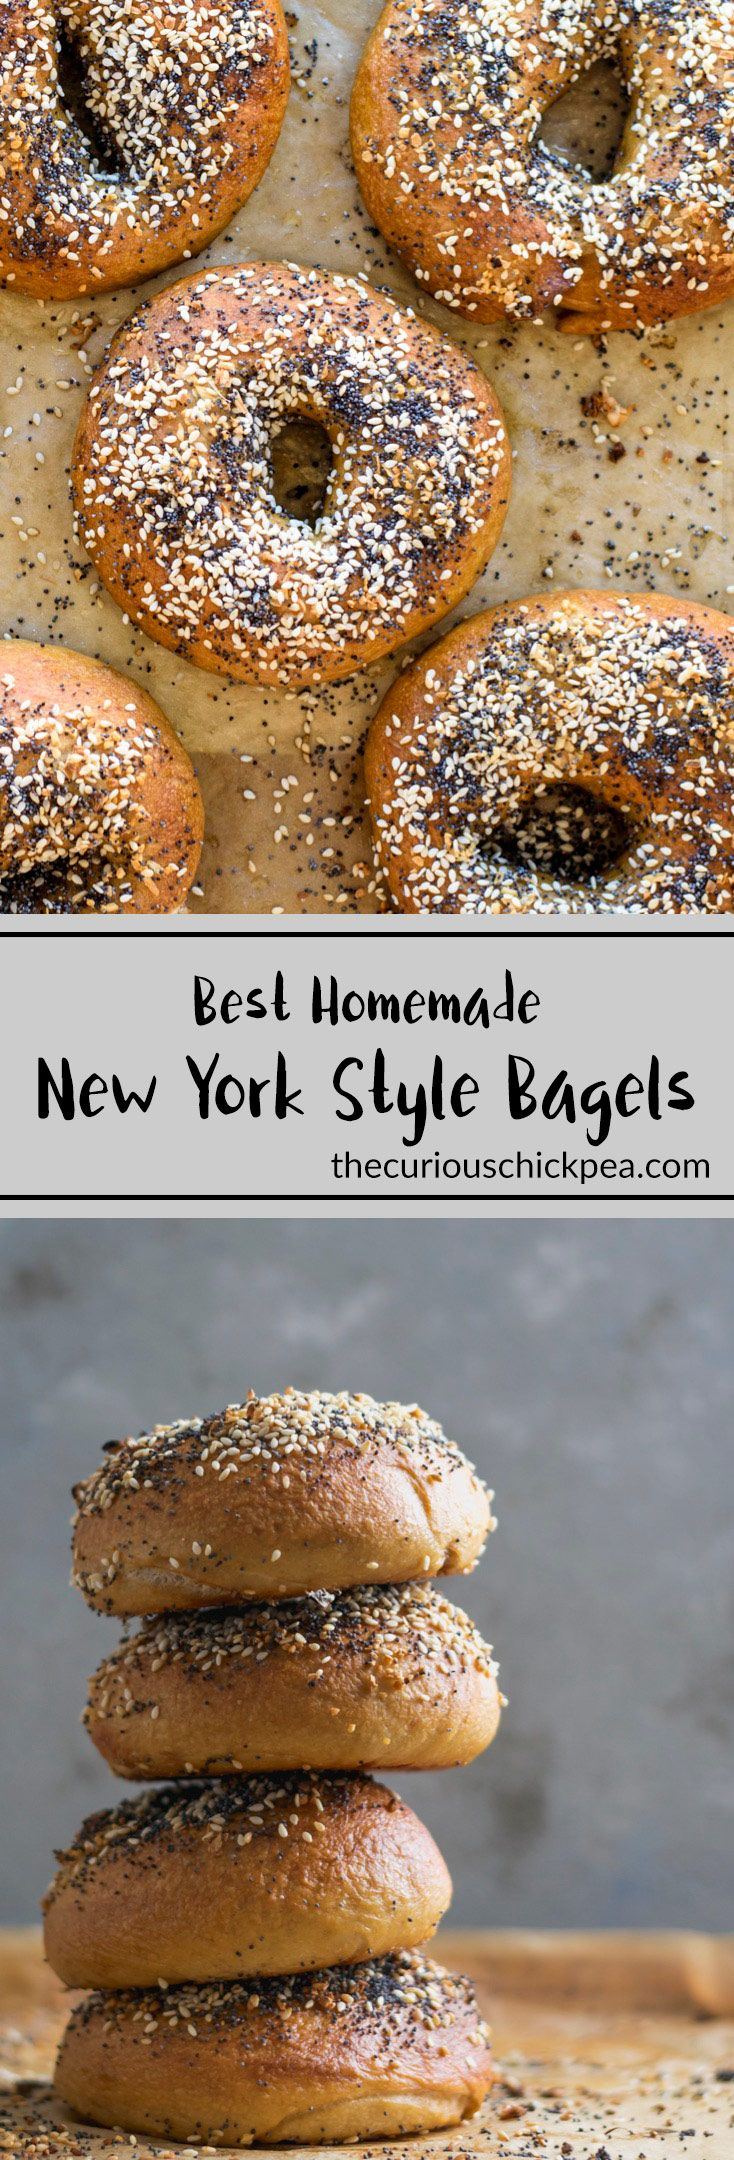 BEST Homemade New York Style Bagels | A step-by-step recipe and the science behind New York style bagels. Chewy and flavorful, they are made in the traditional method, with barley malt & boiling | thecuriouschickpea.com #vegan #bagels